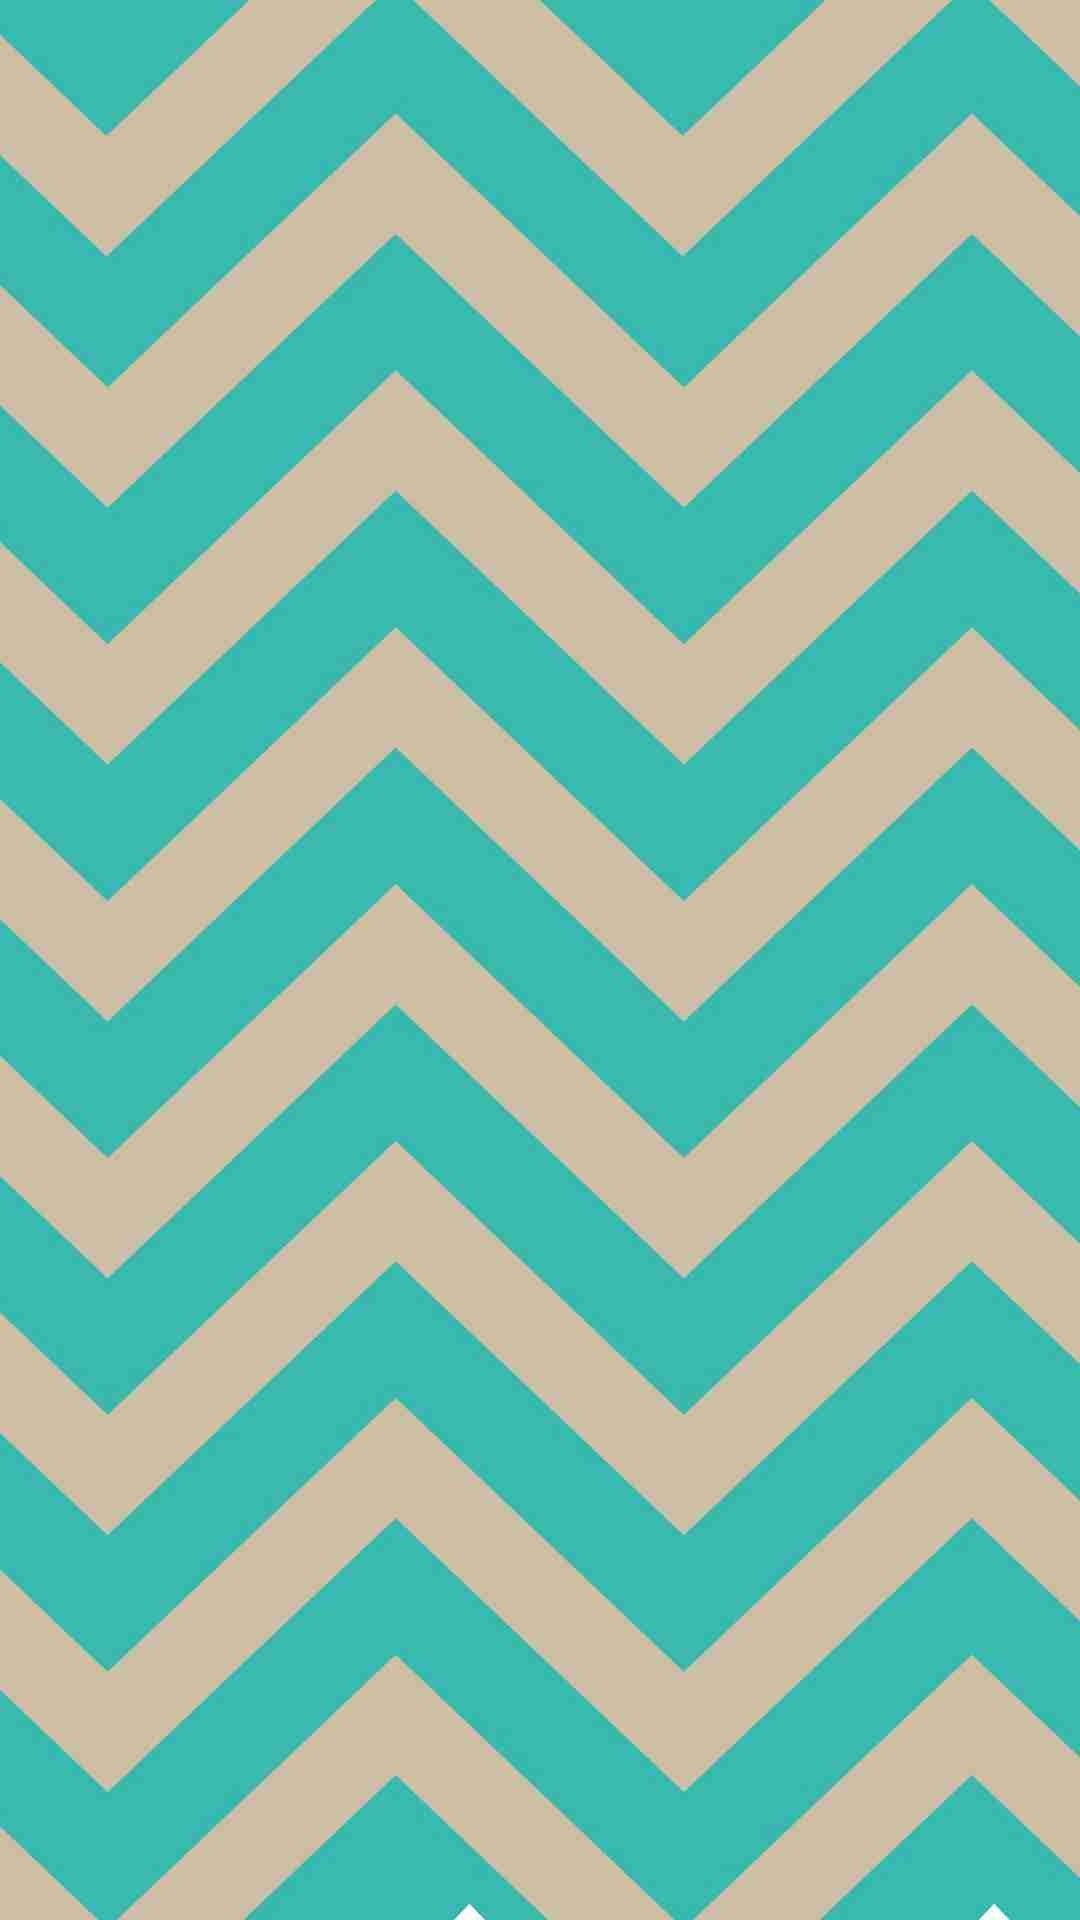 1080x1920 Turquoise Blue and Ivory Chevron iPhone 6 Plus Wallpaper - Classic Colors,  Zigzag Pattern